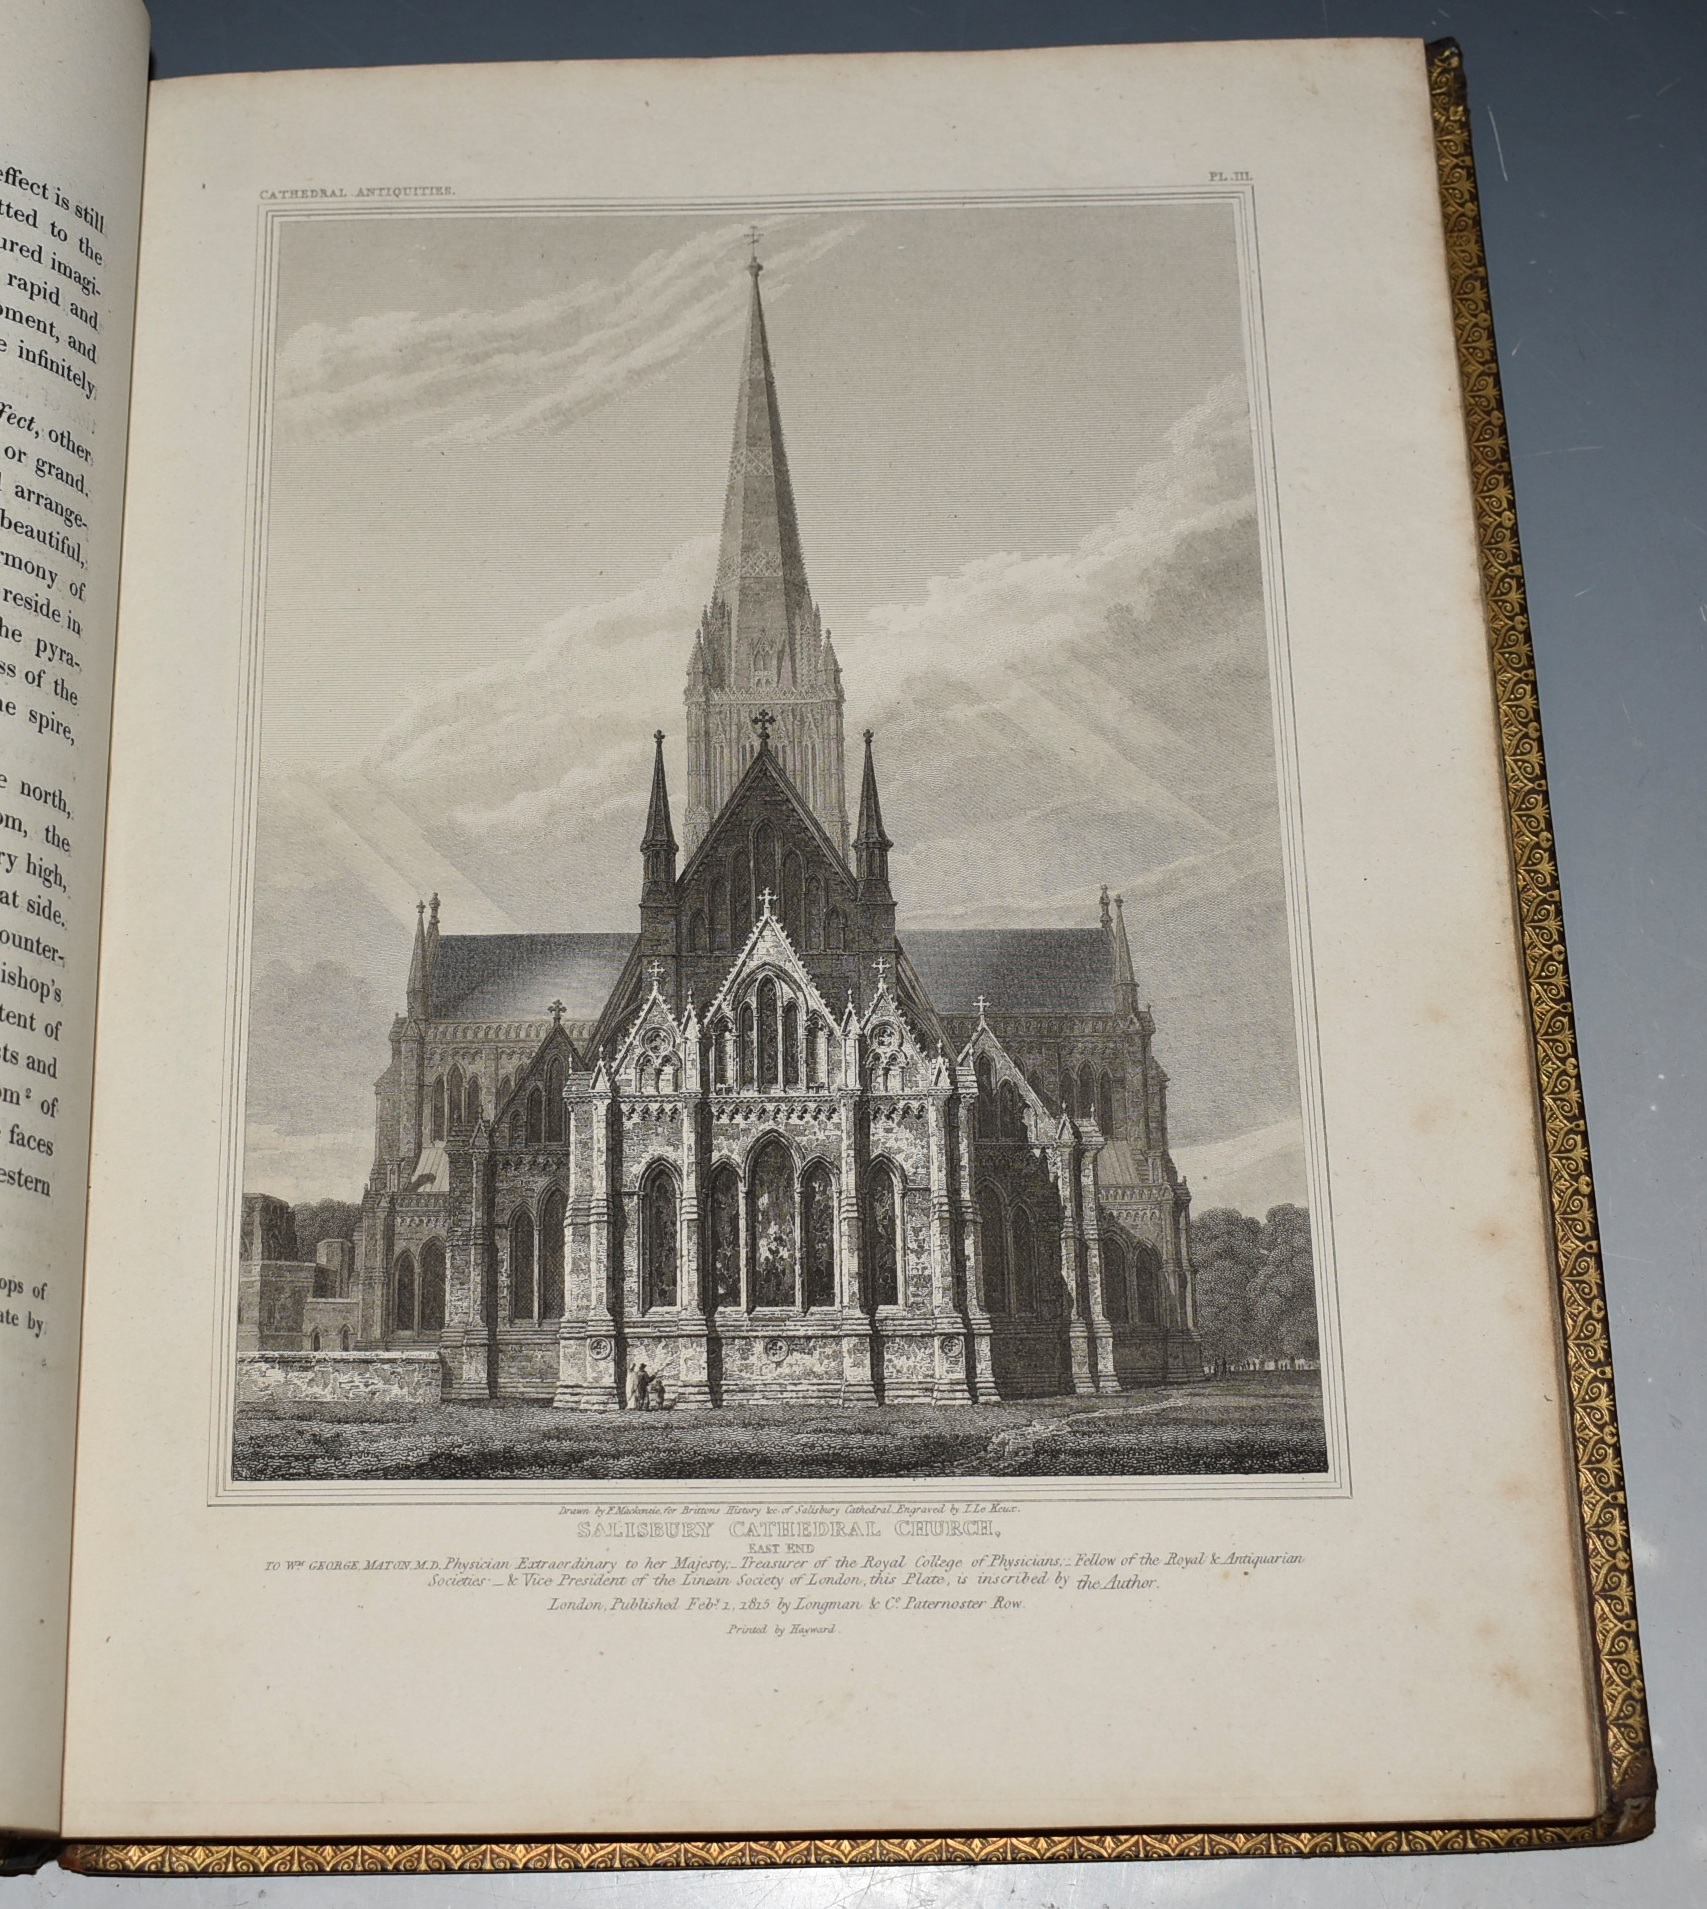 Image for The History and Antiquities of the Cathedral Church of Salisbury, Illustrated with A Series of Engravings, of views, elevations, plans, and details of that edifice: also Etchings of the Ancient Monuments and Sculpture; including biographical anecdotes of the Bishops, and of other eminent persons connected with the church.